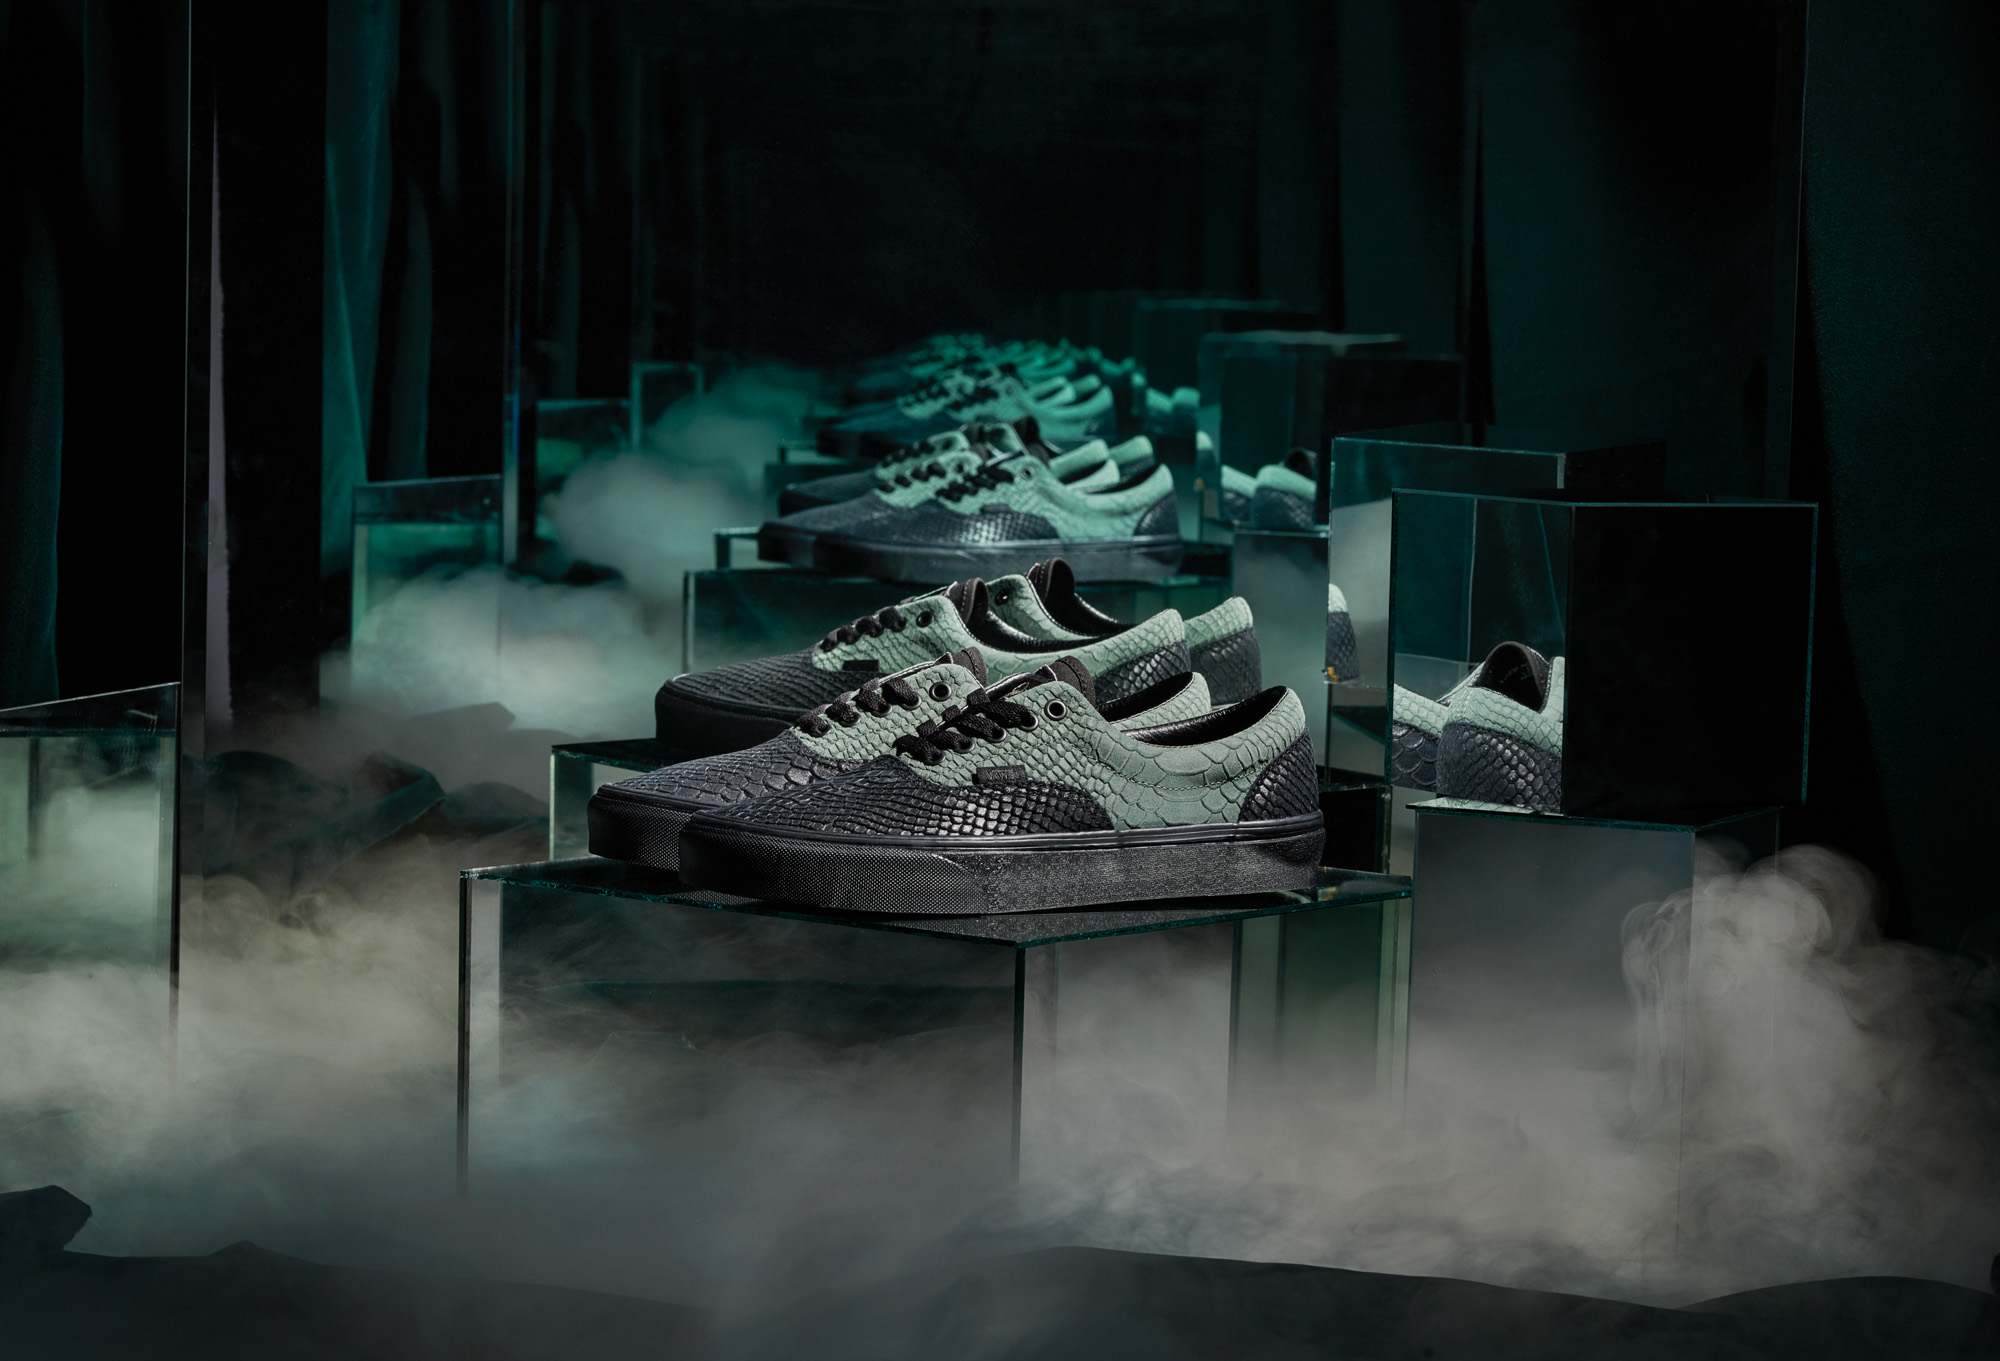 Vans x Harry Potter Slytherin collection